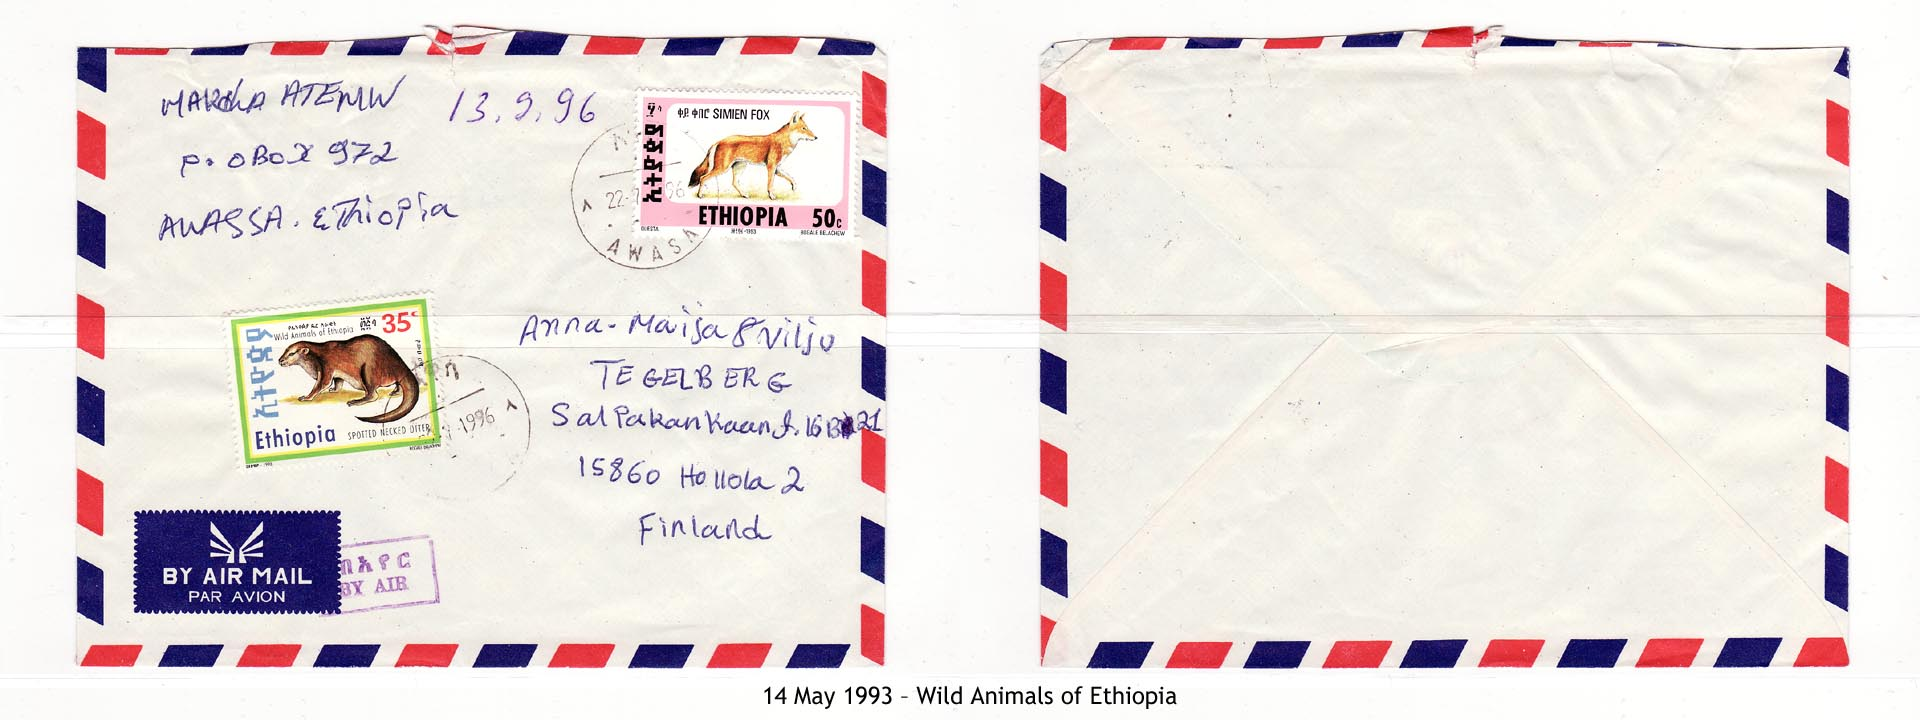 19930514 – Wild Animals of Ethiopia